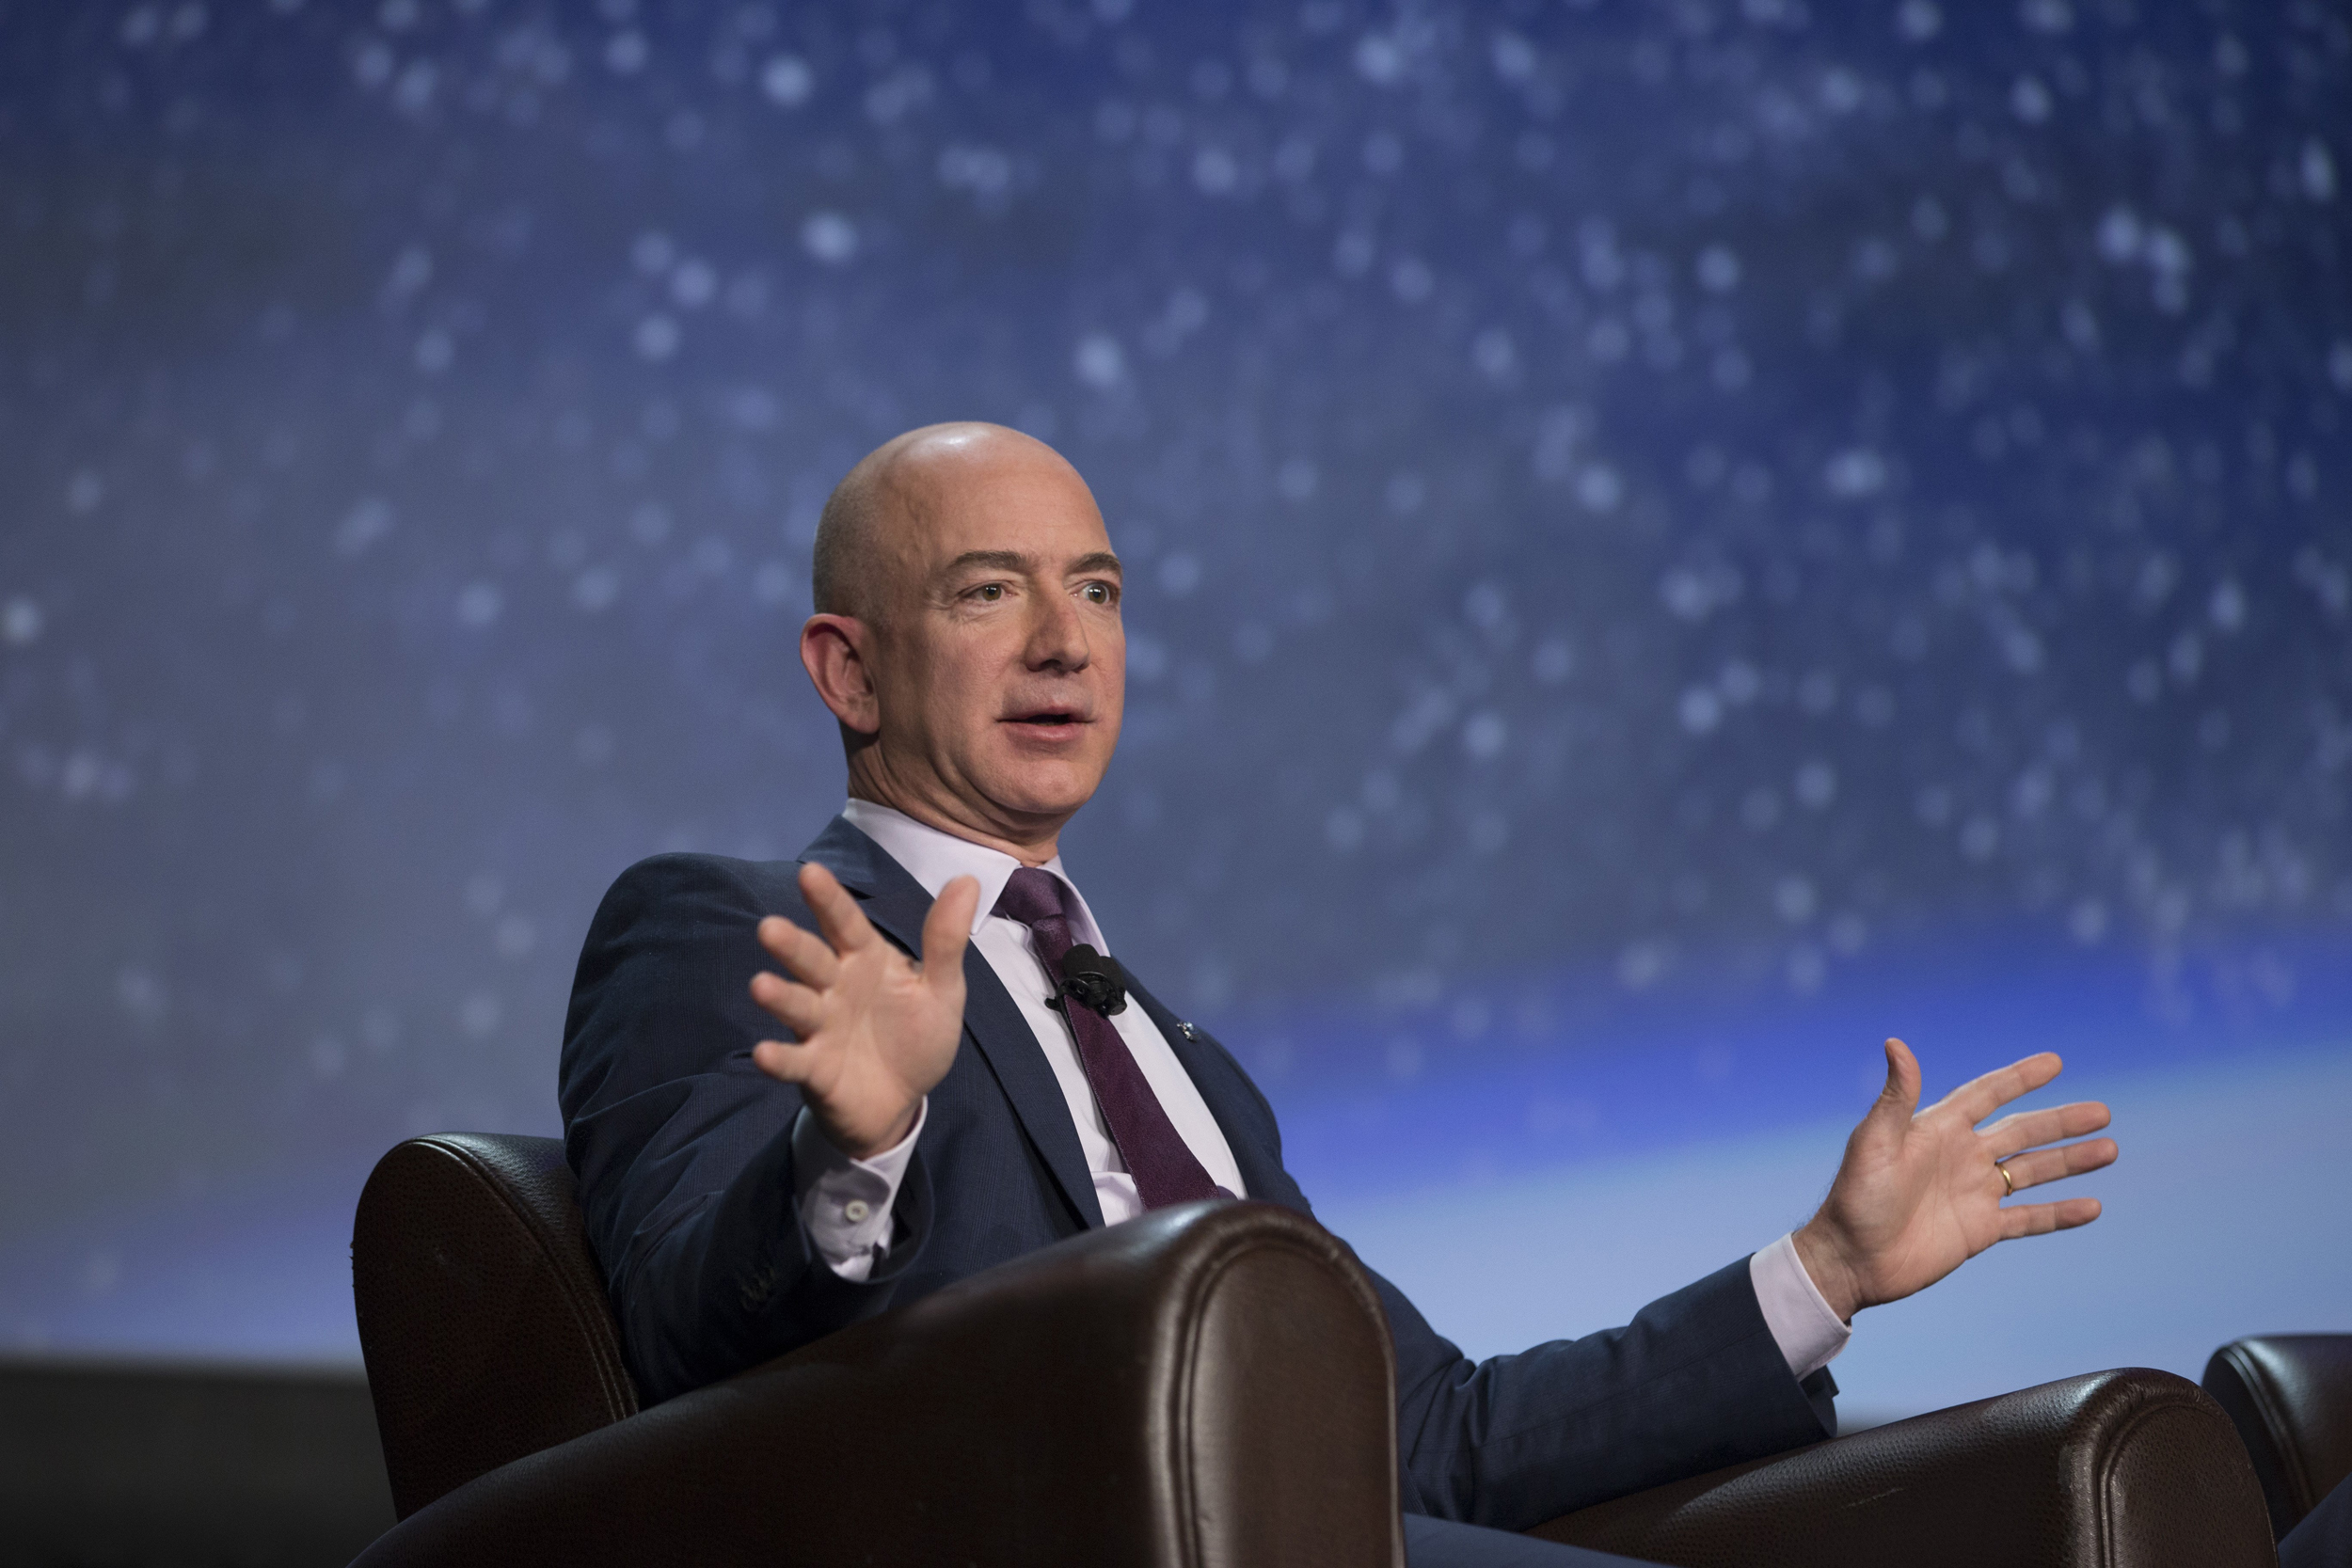 Image: Jeff Bezos speaks during the 32nd Space Symposium